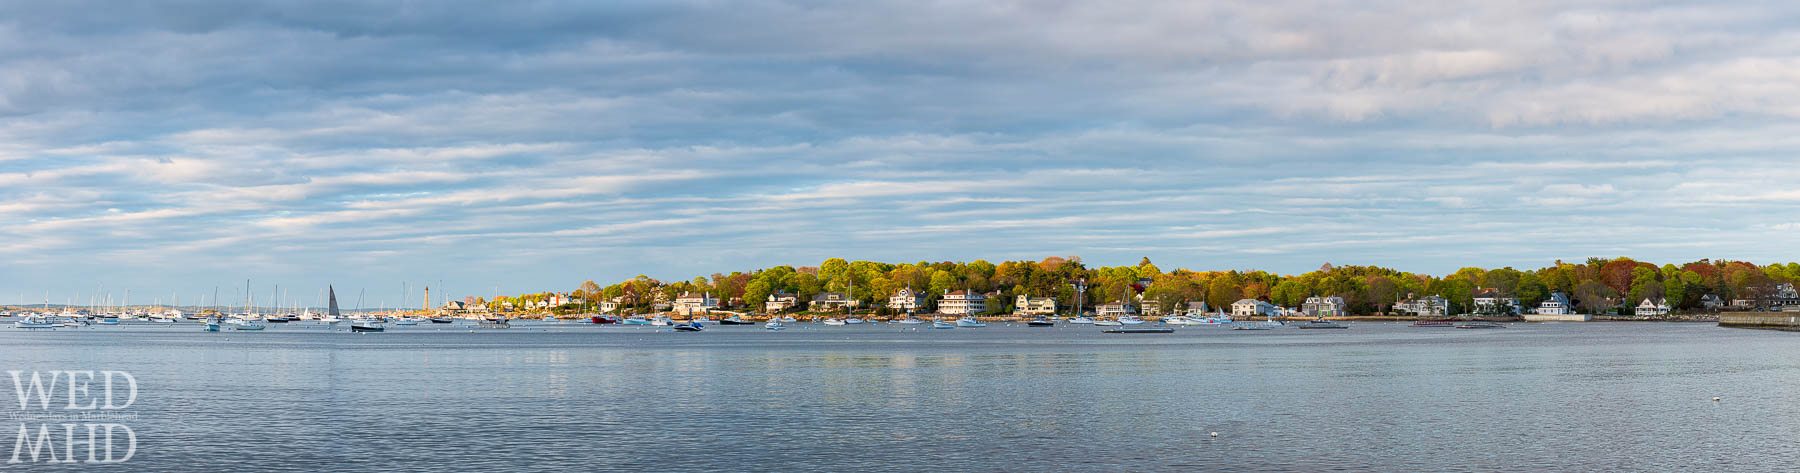 A panoramic view of Marblehead Neck and boats in the harbor from Riverhead Beach